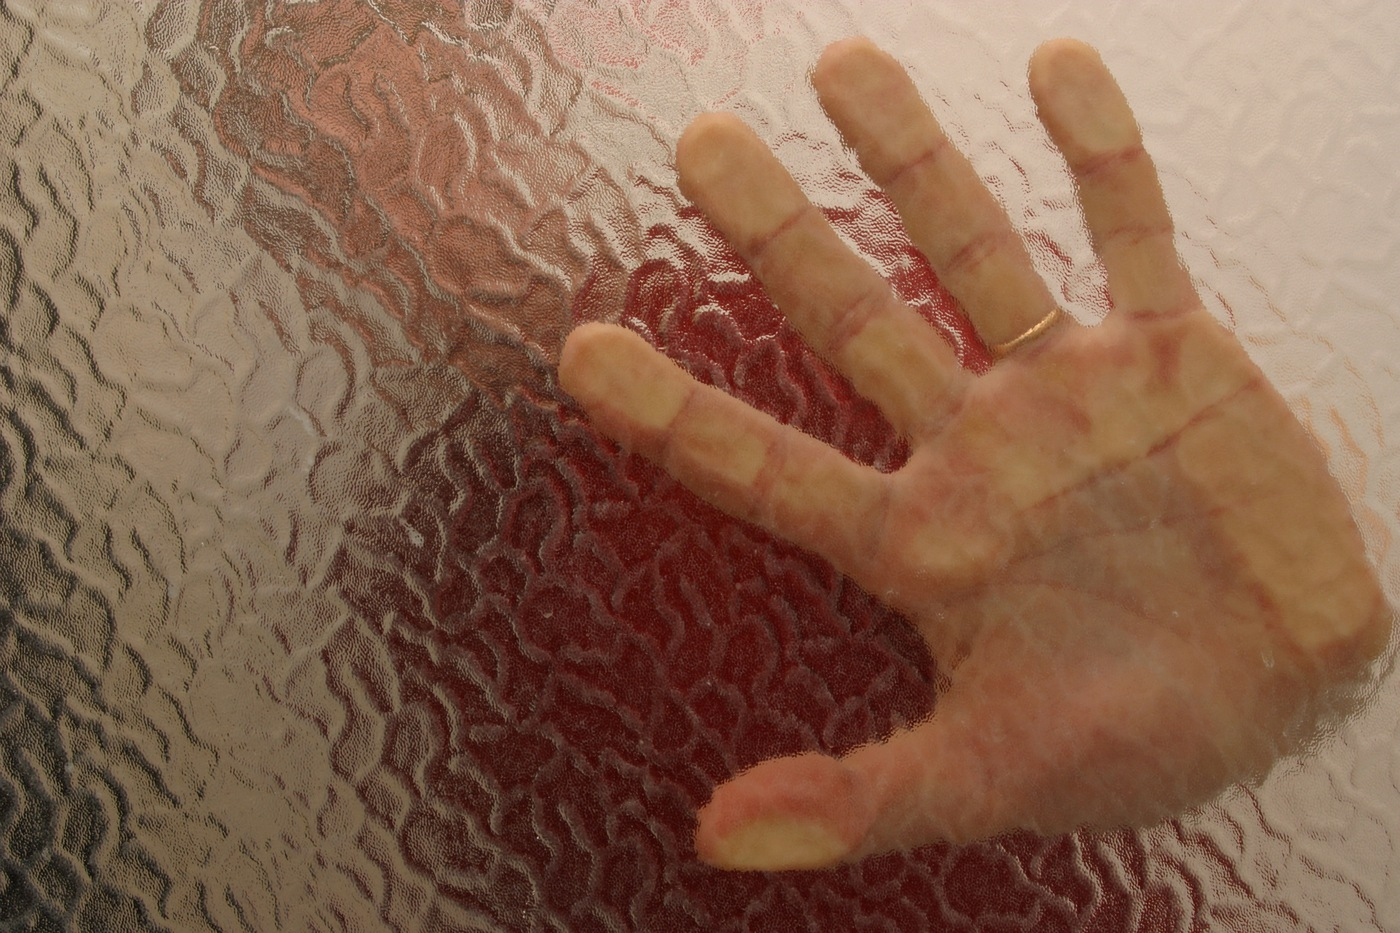 Stock image depicting person pressing palm against frosted glass. (From CJIS Link article)